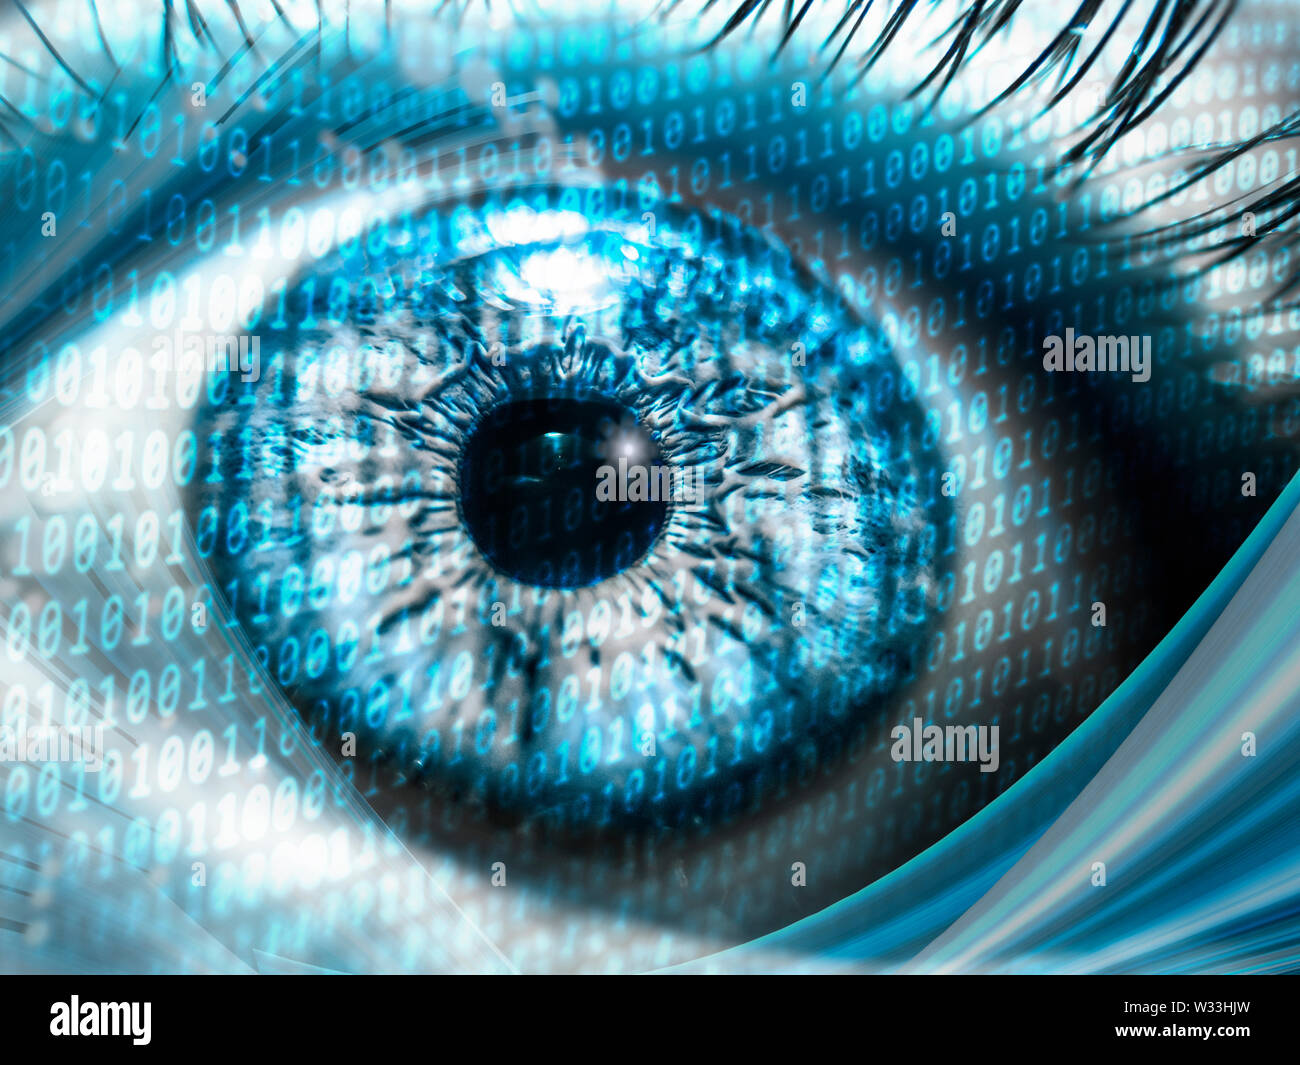 digital concept with binary numbers on close-up pupil for speed internet and data usage - Stock Image